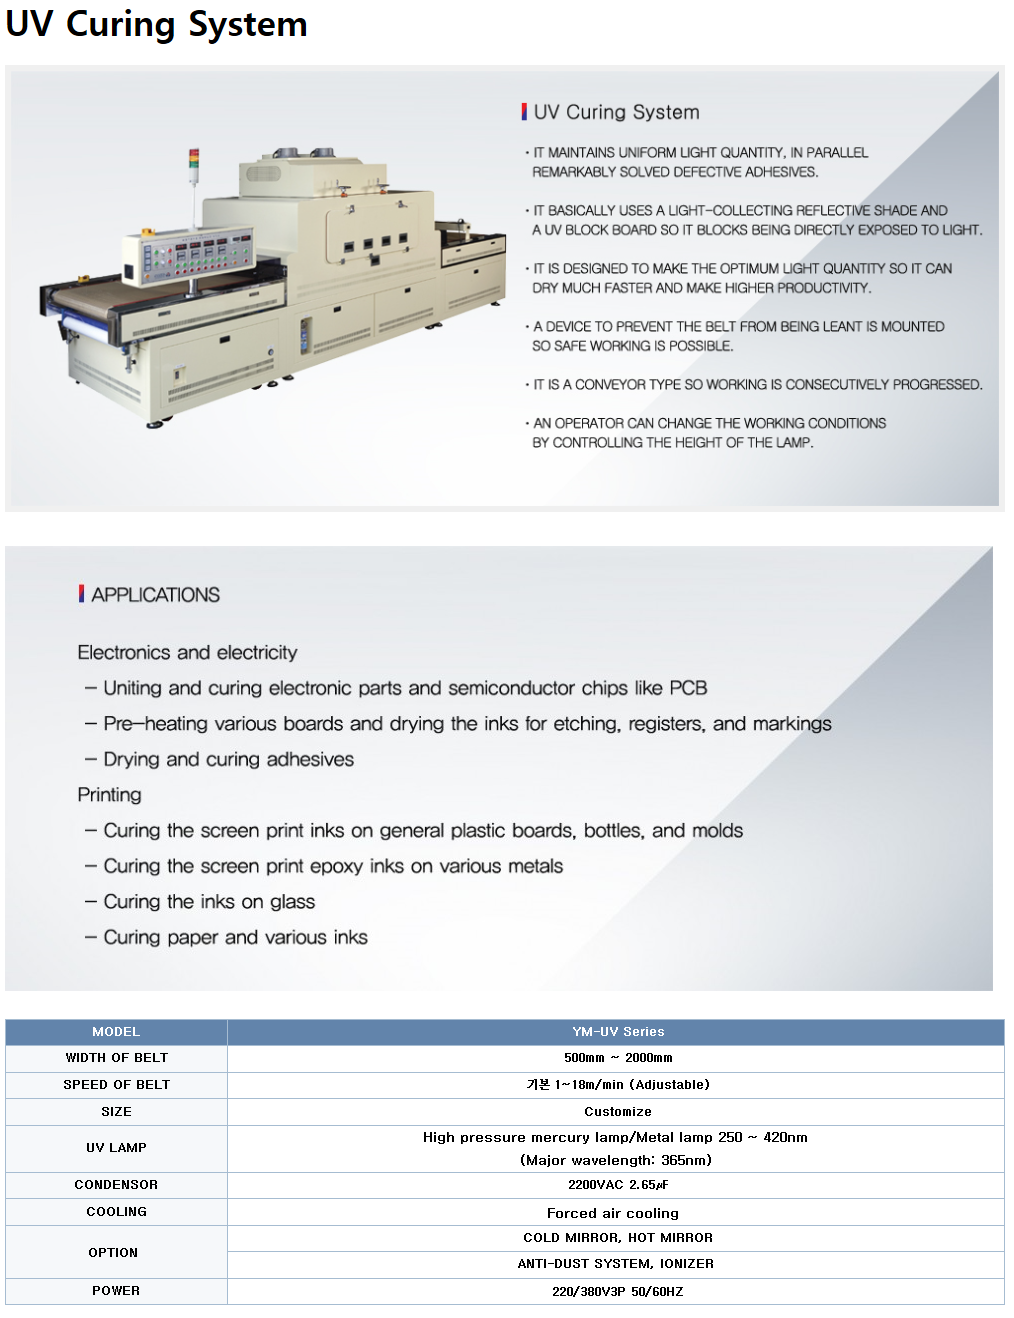 YOUNGAM INDUSTRIAL - UV Curing System - YM-UV Series - Dryer Machine